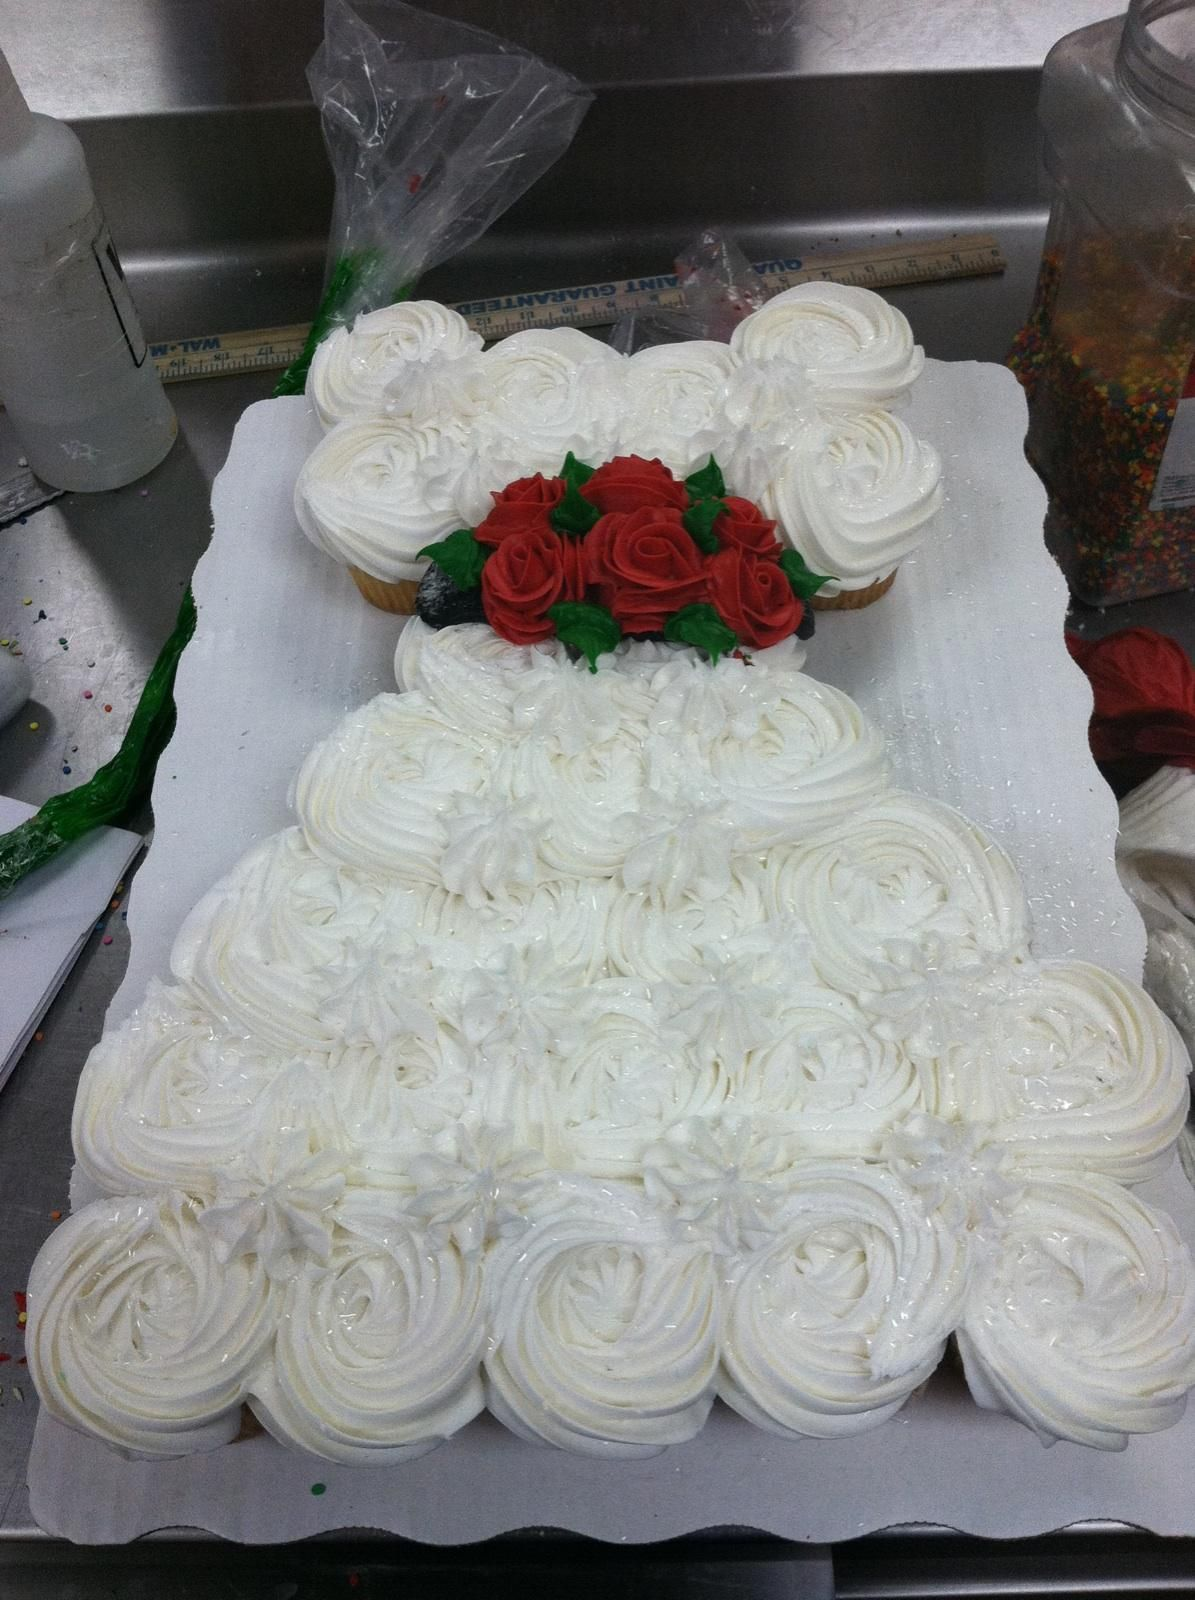 Wedding Wedding Dress Cupcake Cake wedding dress cupcake cake by nichole i love this this